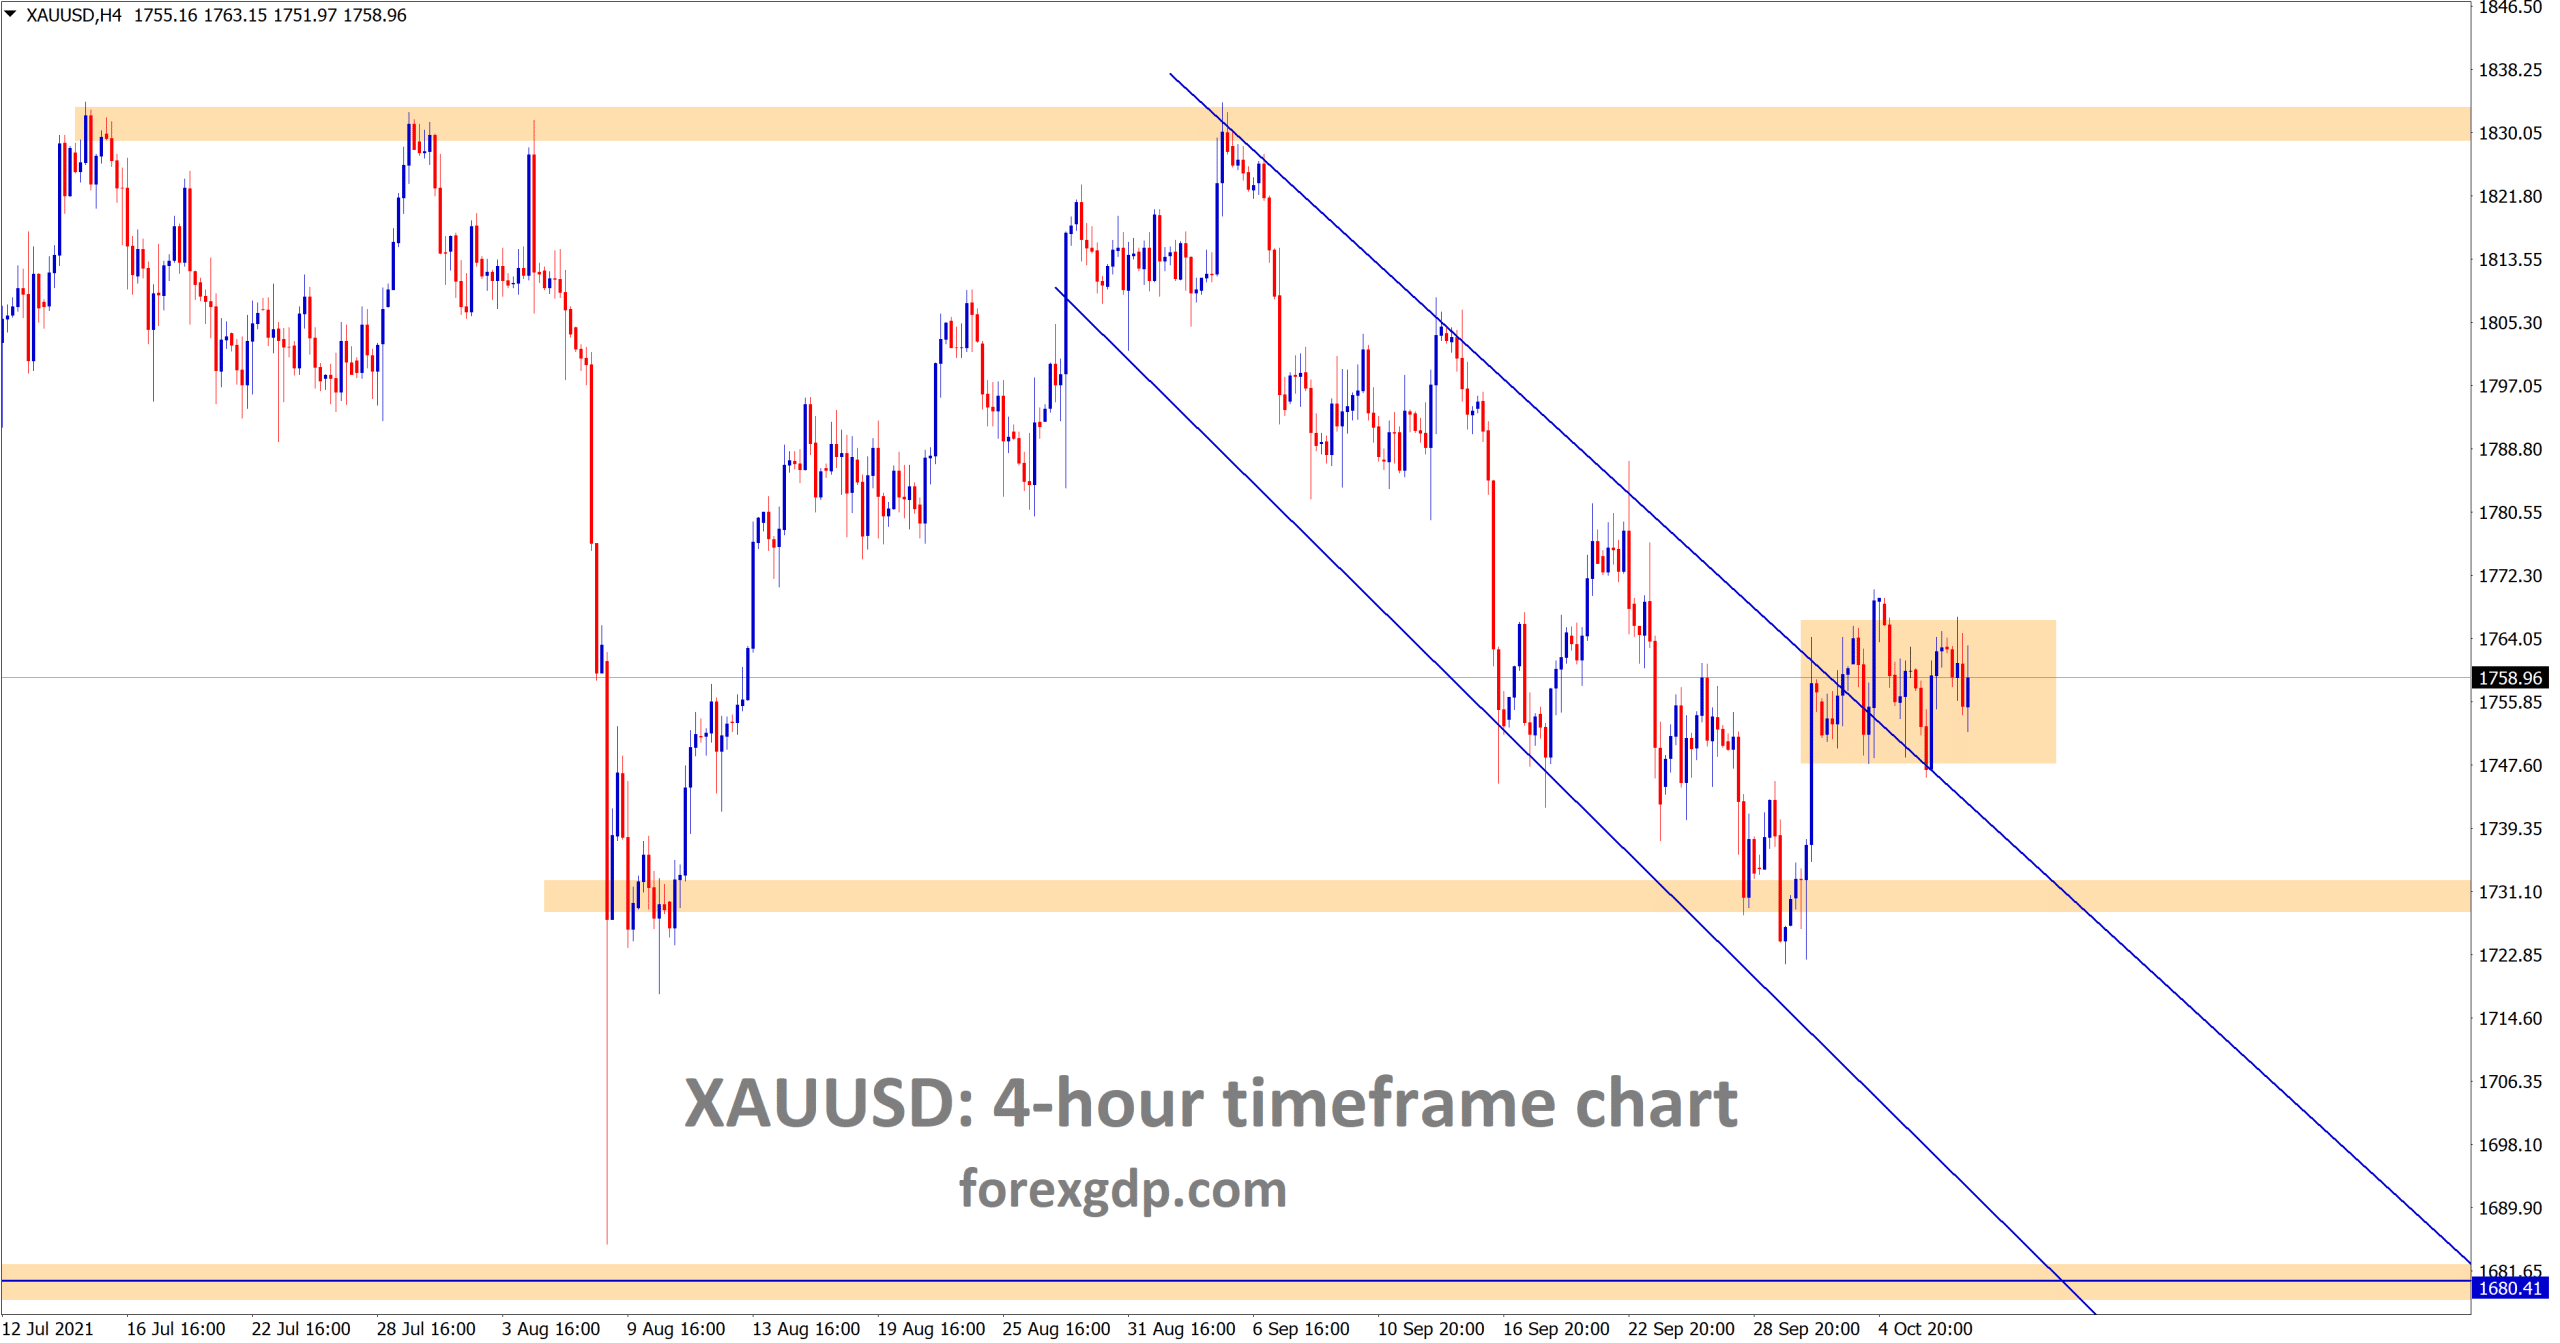 Gold XAUUSD is consolidating at the lower high area of the descending channel in the 4 hour timeframe chart